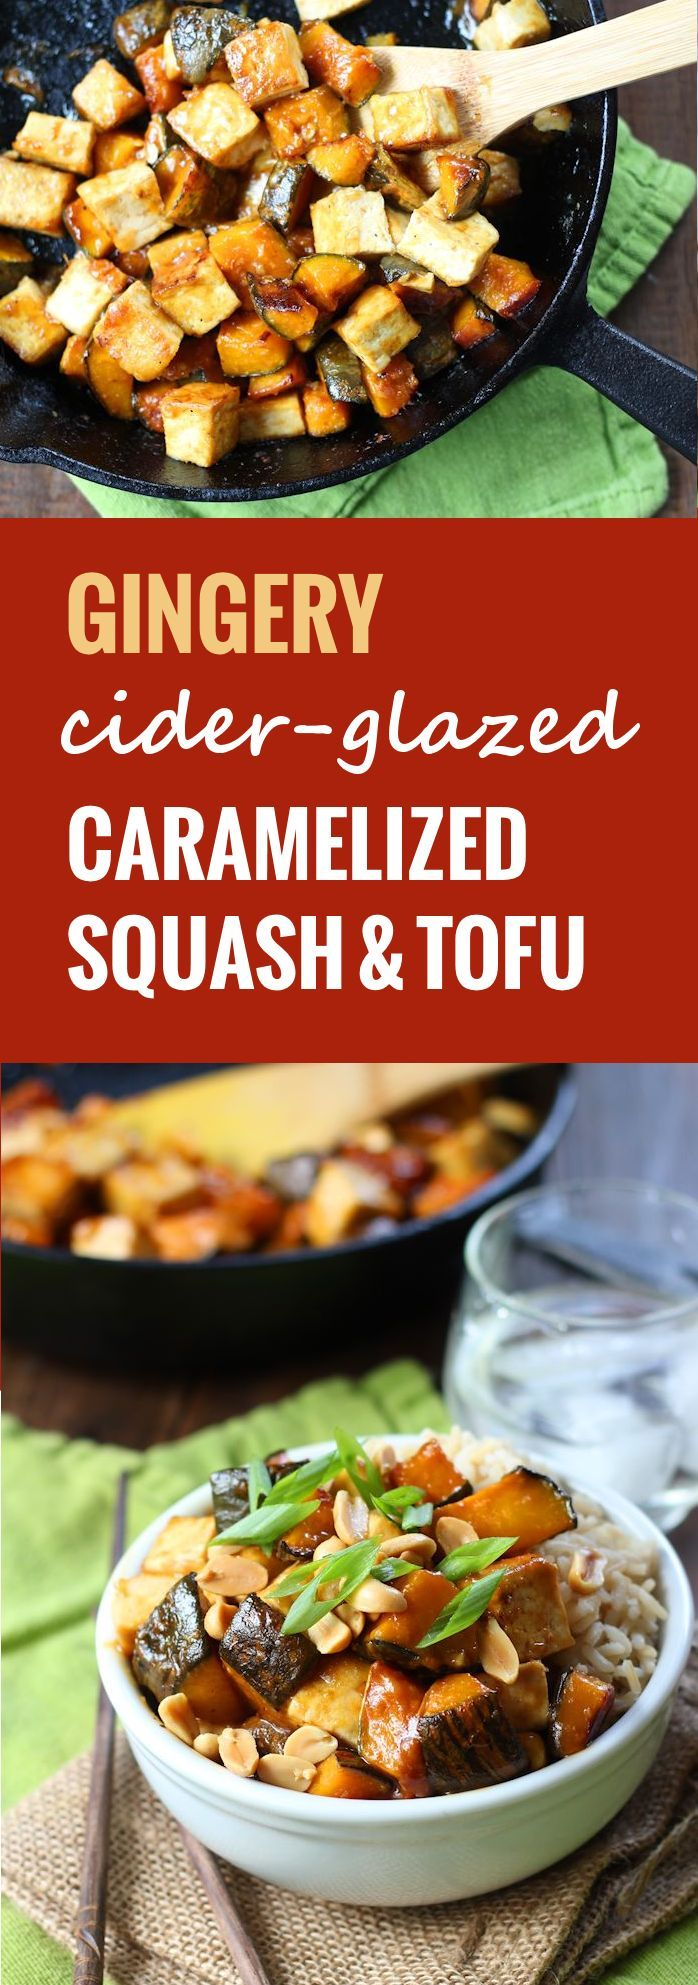 Tender chunks of caramelized winter squash are served up with crispy pan-fried tofu, drenched in a gingery Asian-inspired glaze.